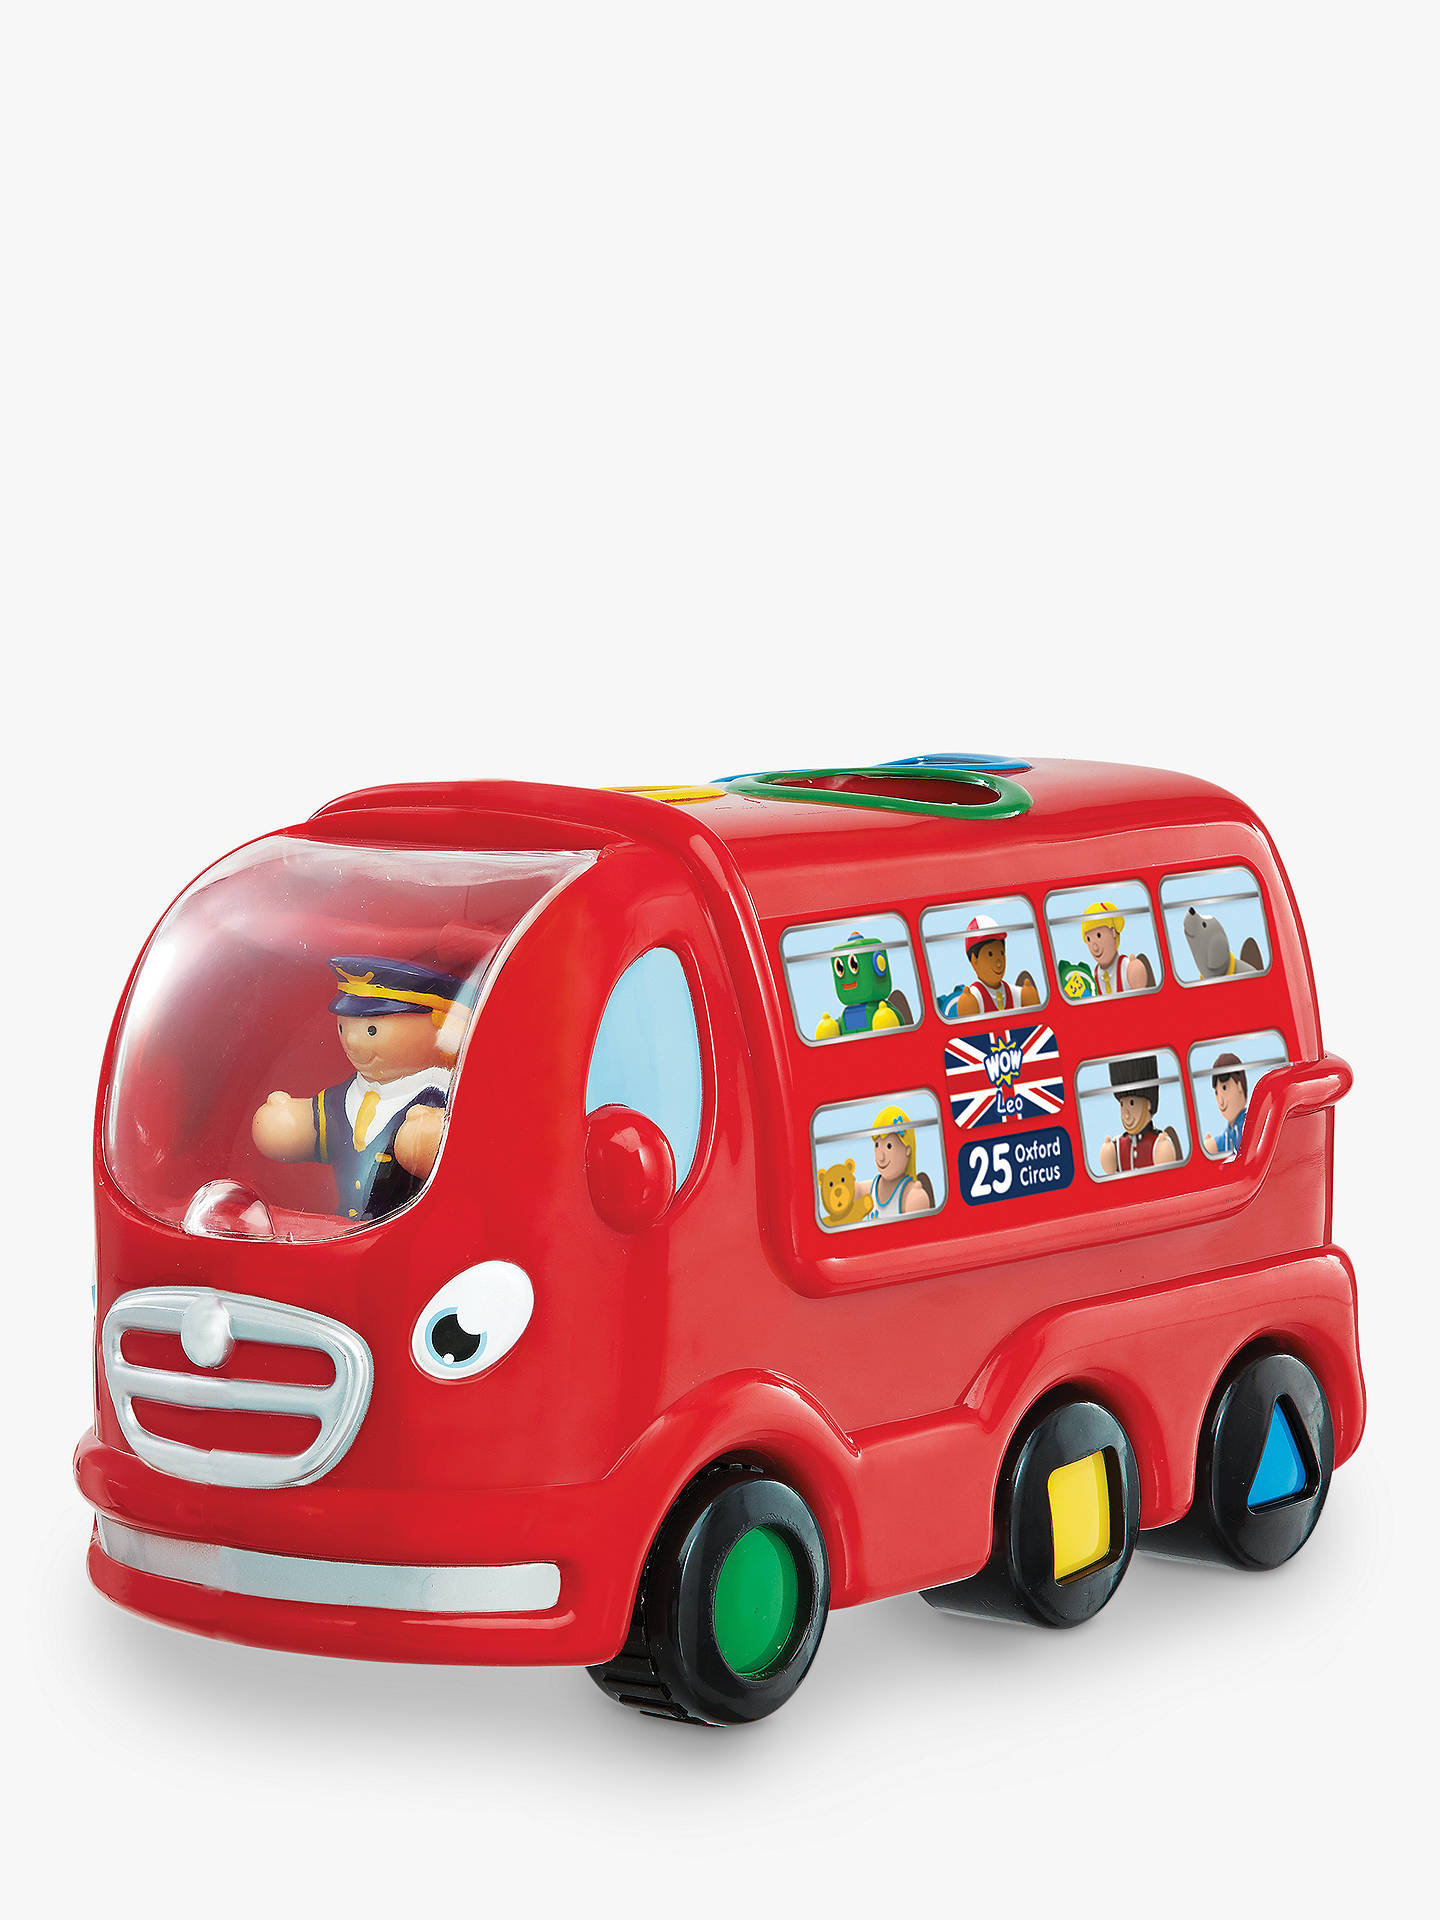 88f2810afe55 BuyWOW Toys London Bus Leo Set Online at johnlewis.com ...